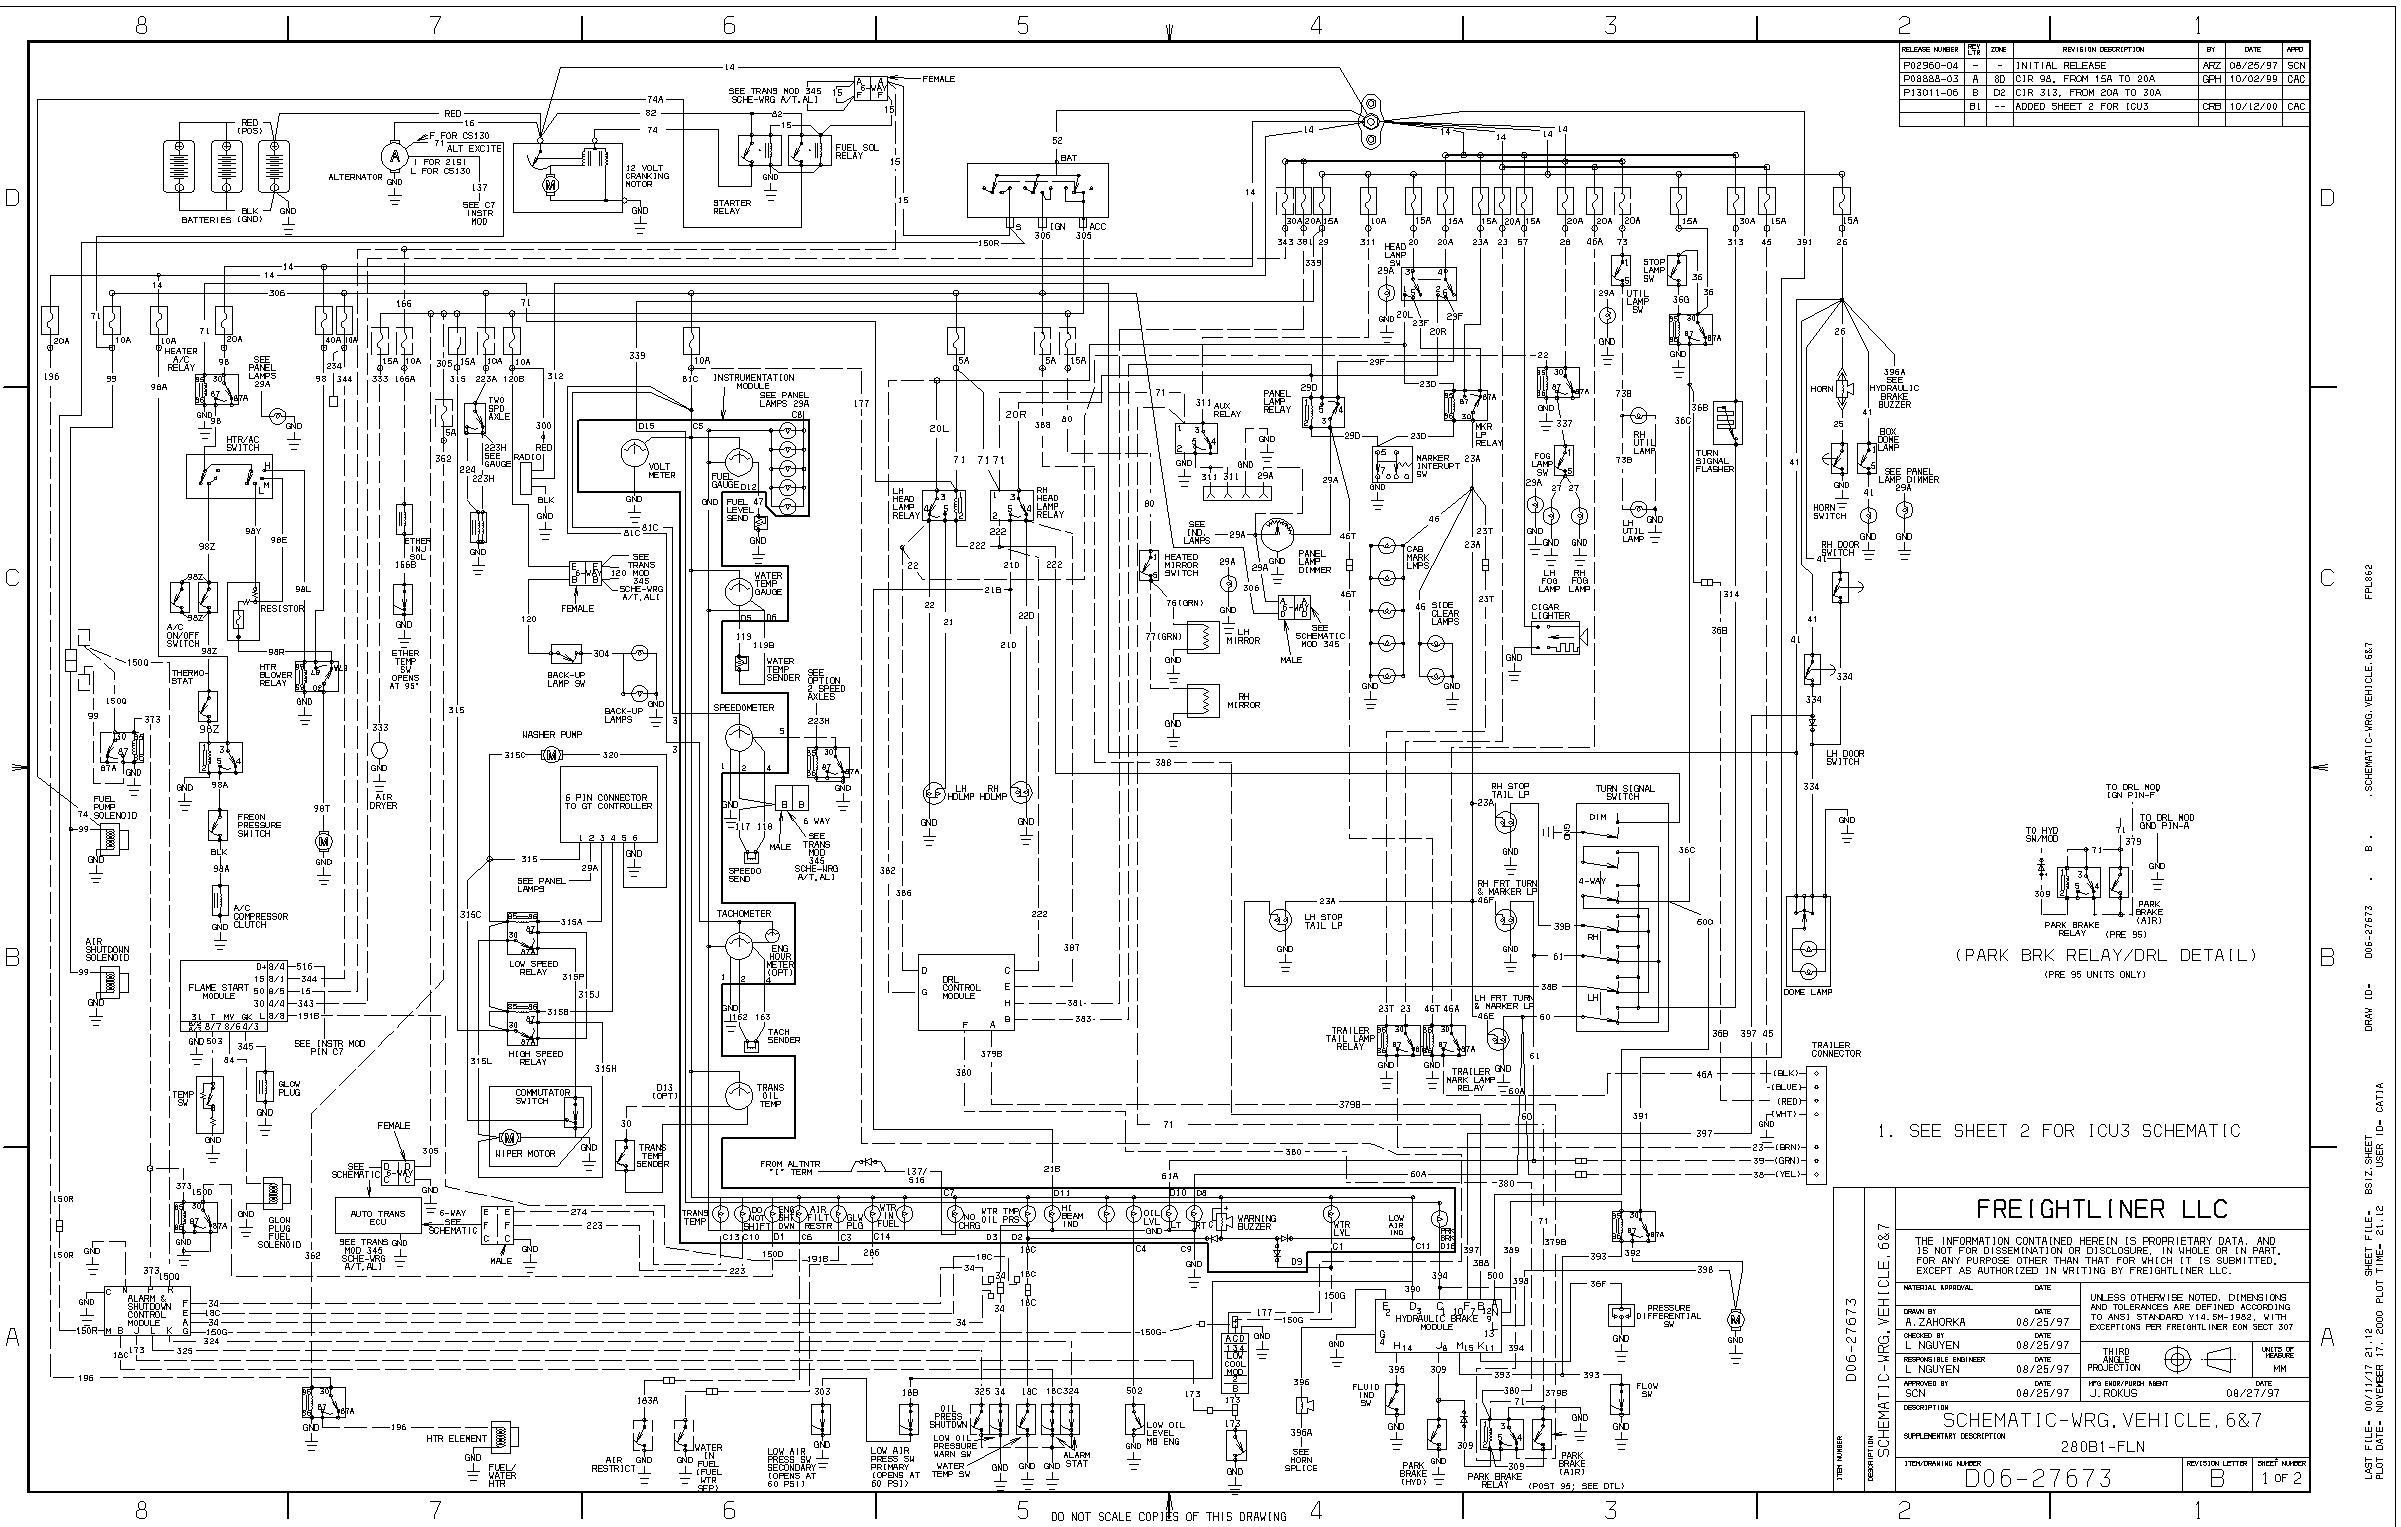 peterbilt 379 engine fan diagram 2000 379 peterbilt wiring